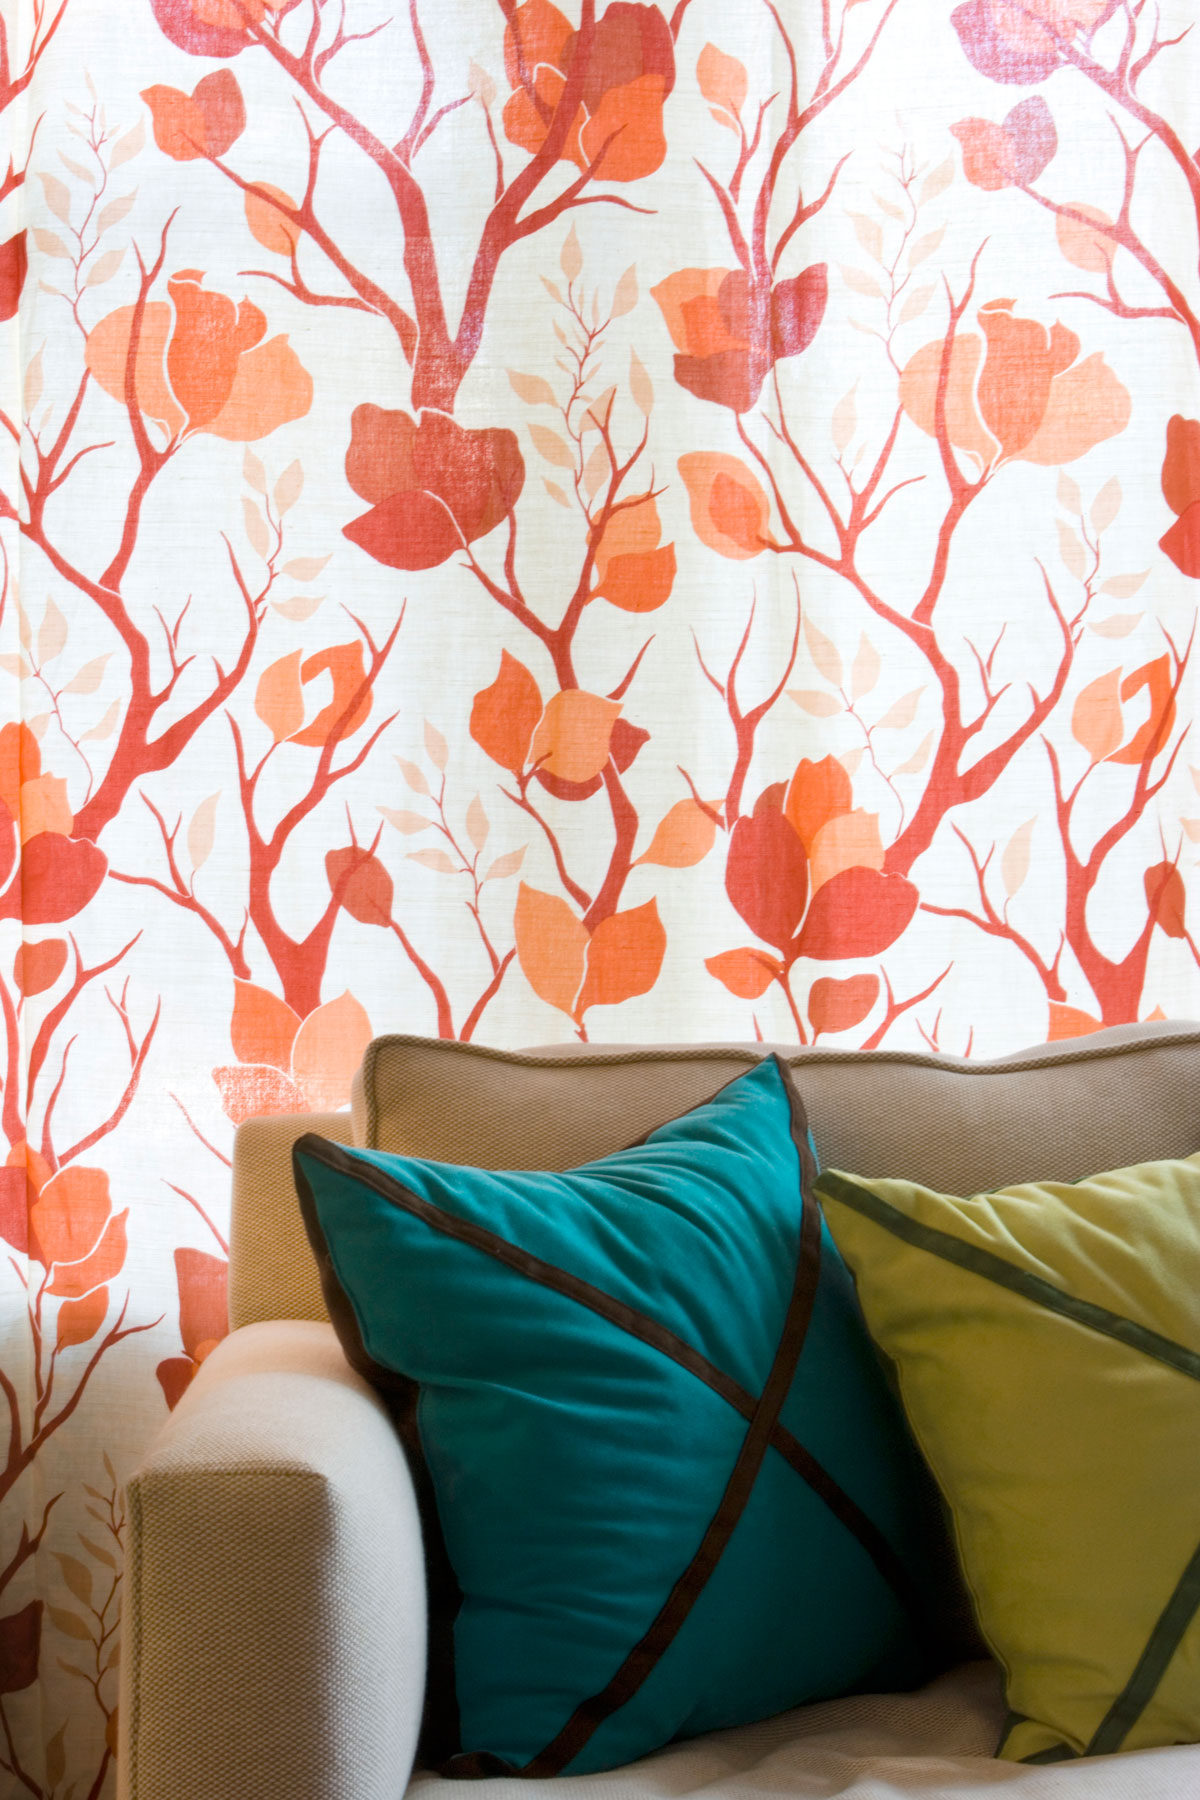 Living room with orange tree patterned wallpaper